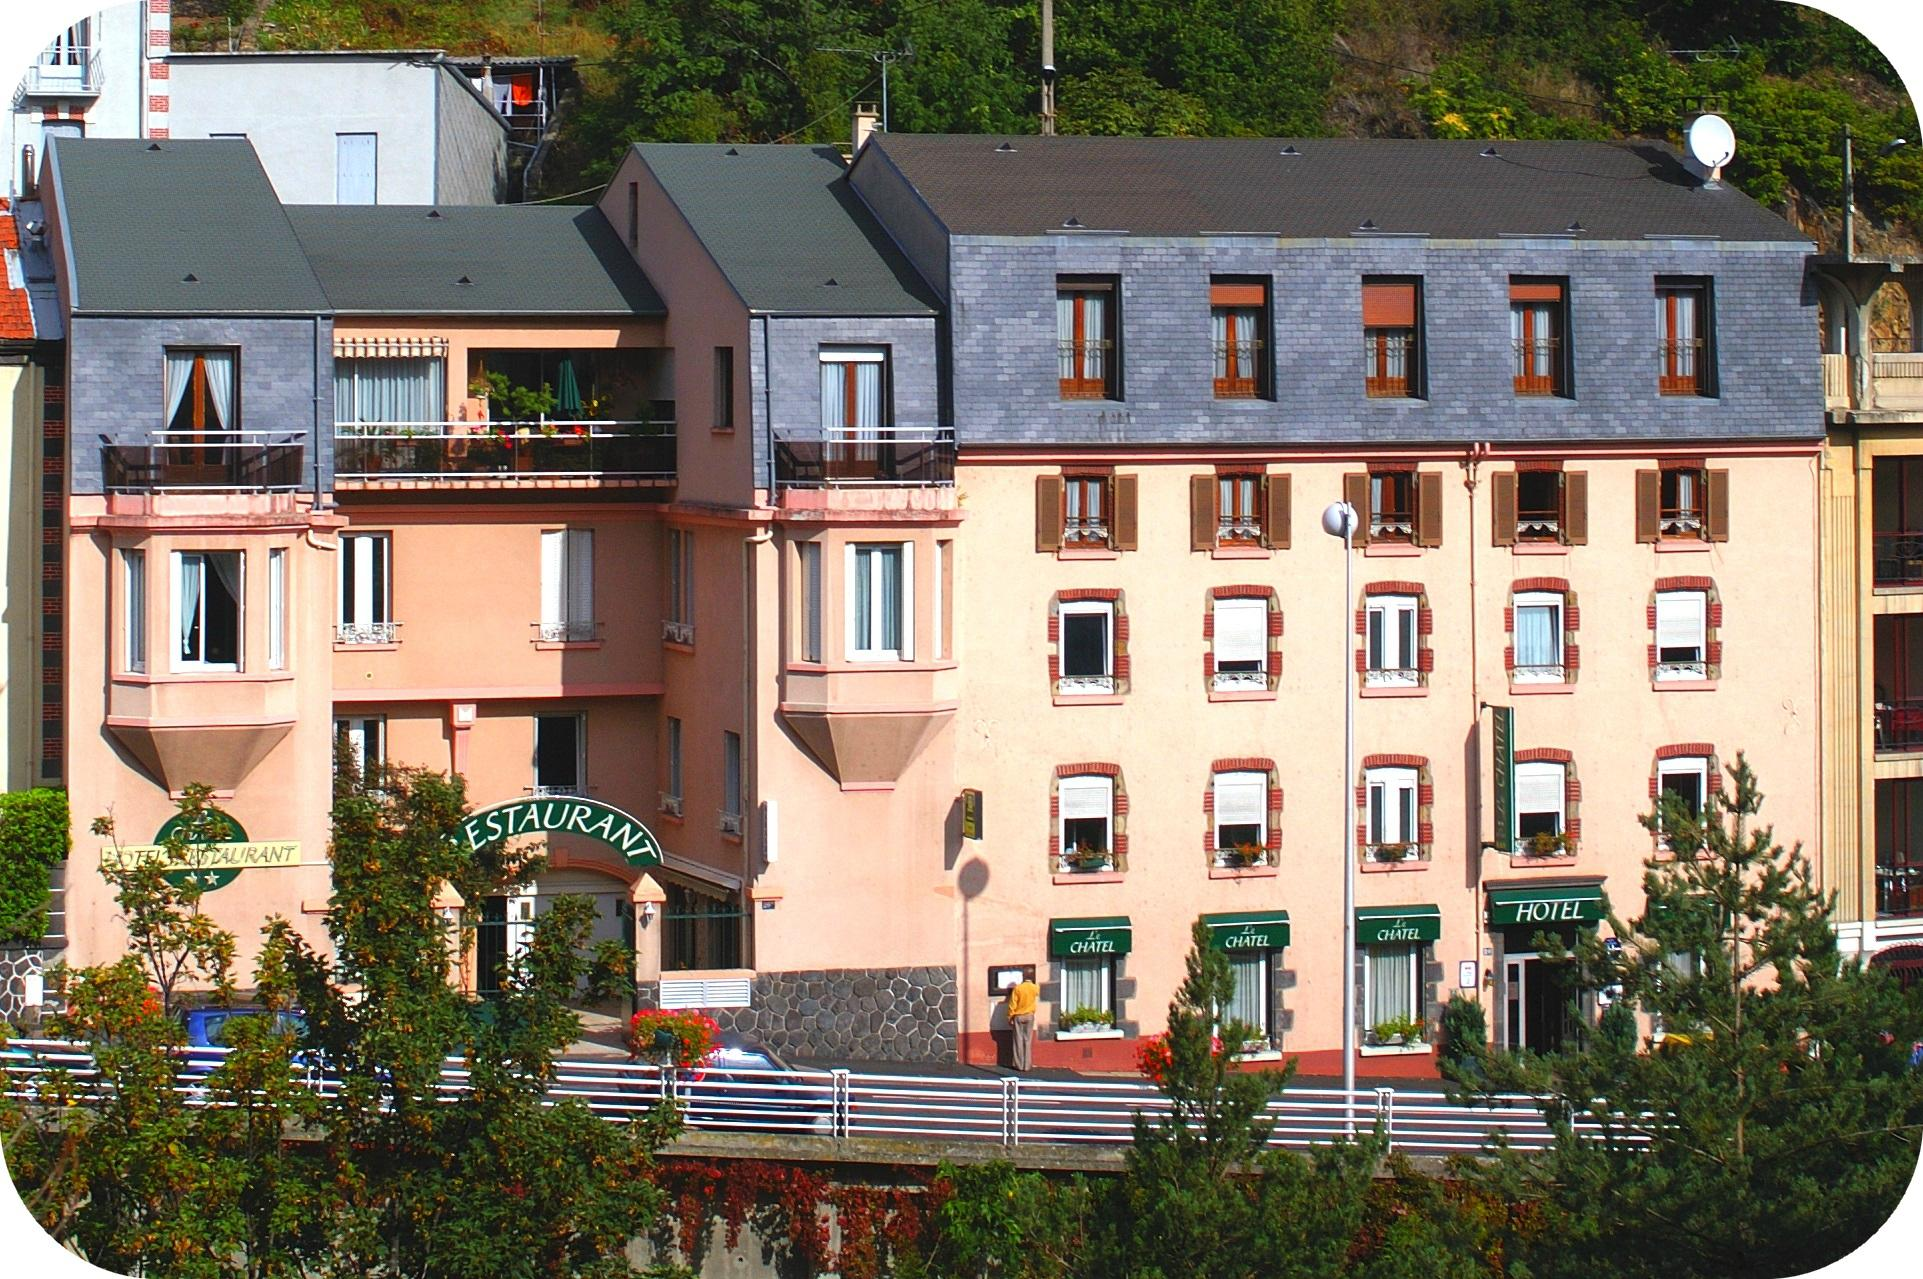 Le Chatel Hotel-Restaurant